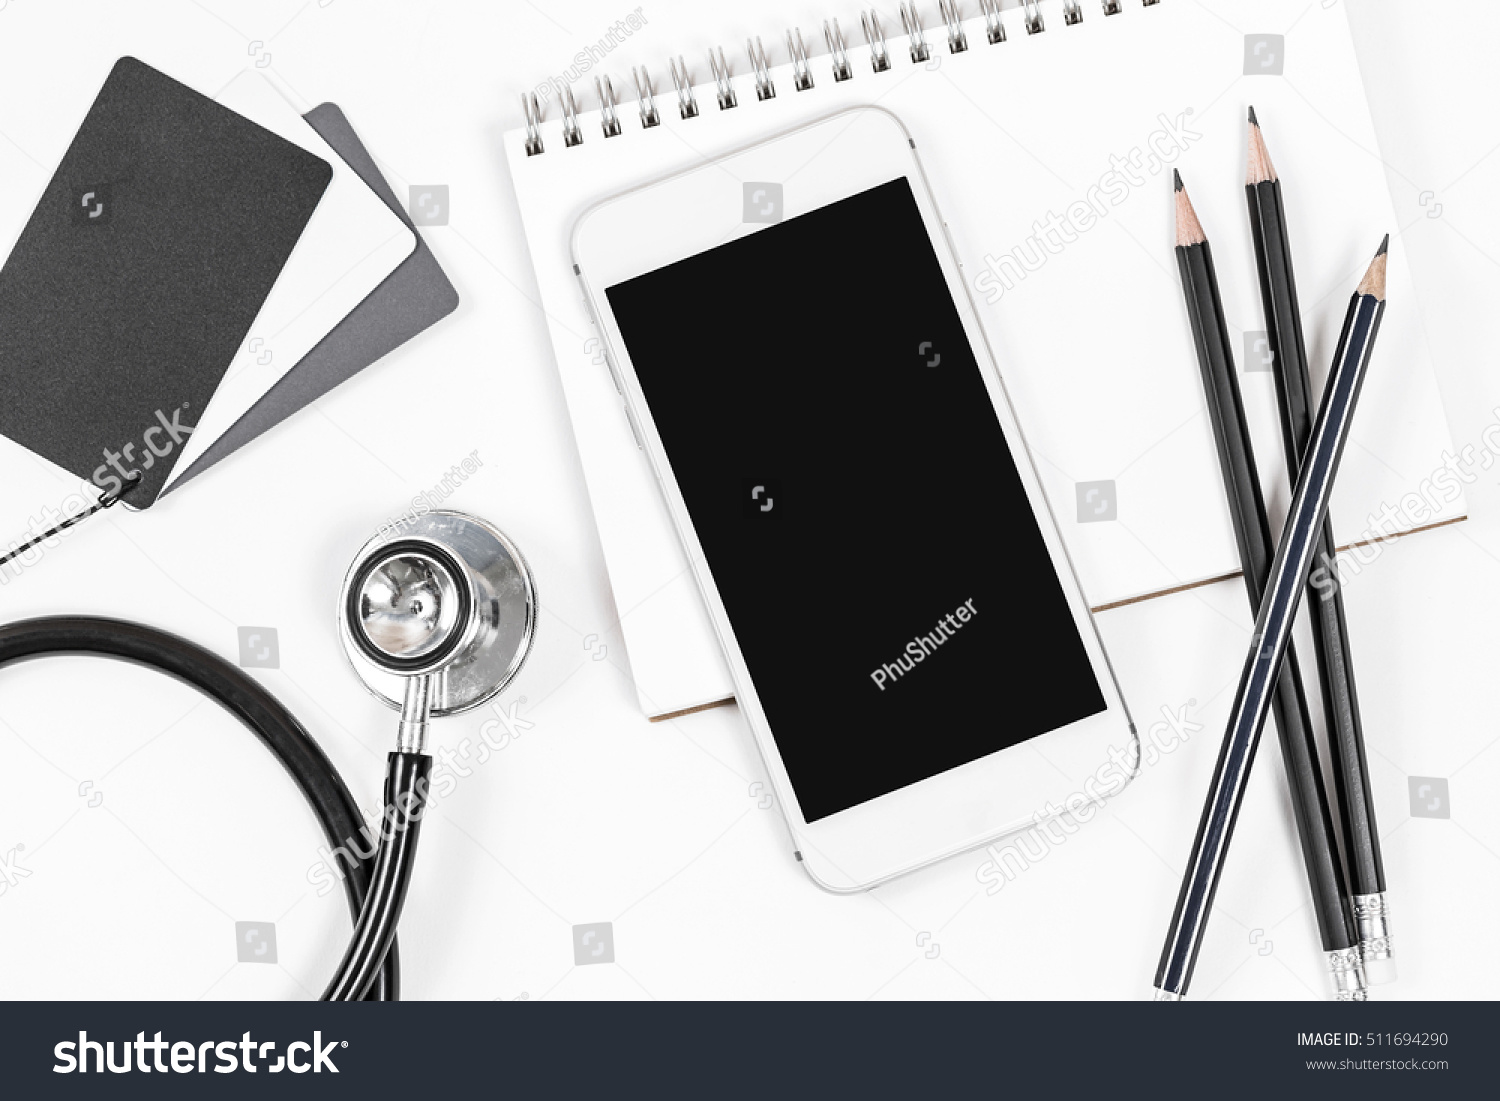 Doctor Desk Top View Shot Above Stock Photo Edit Now 511694290 Electronics Project Electronic Stethoscope Designing Engineering From Of Table With Notebook Paper Pen